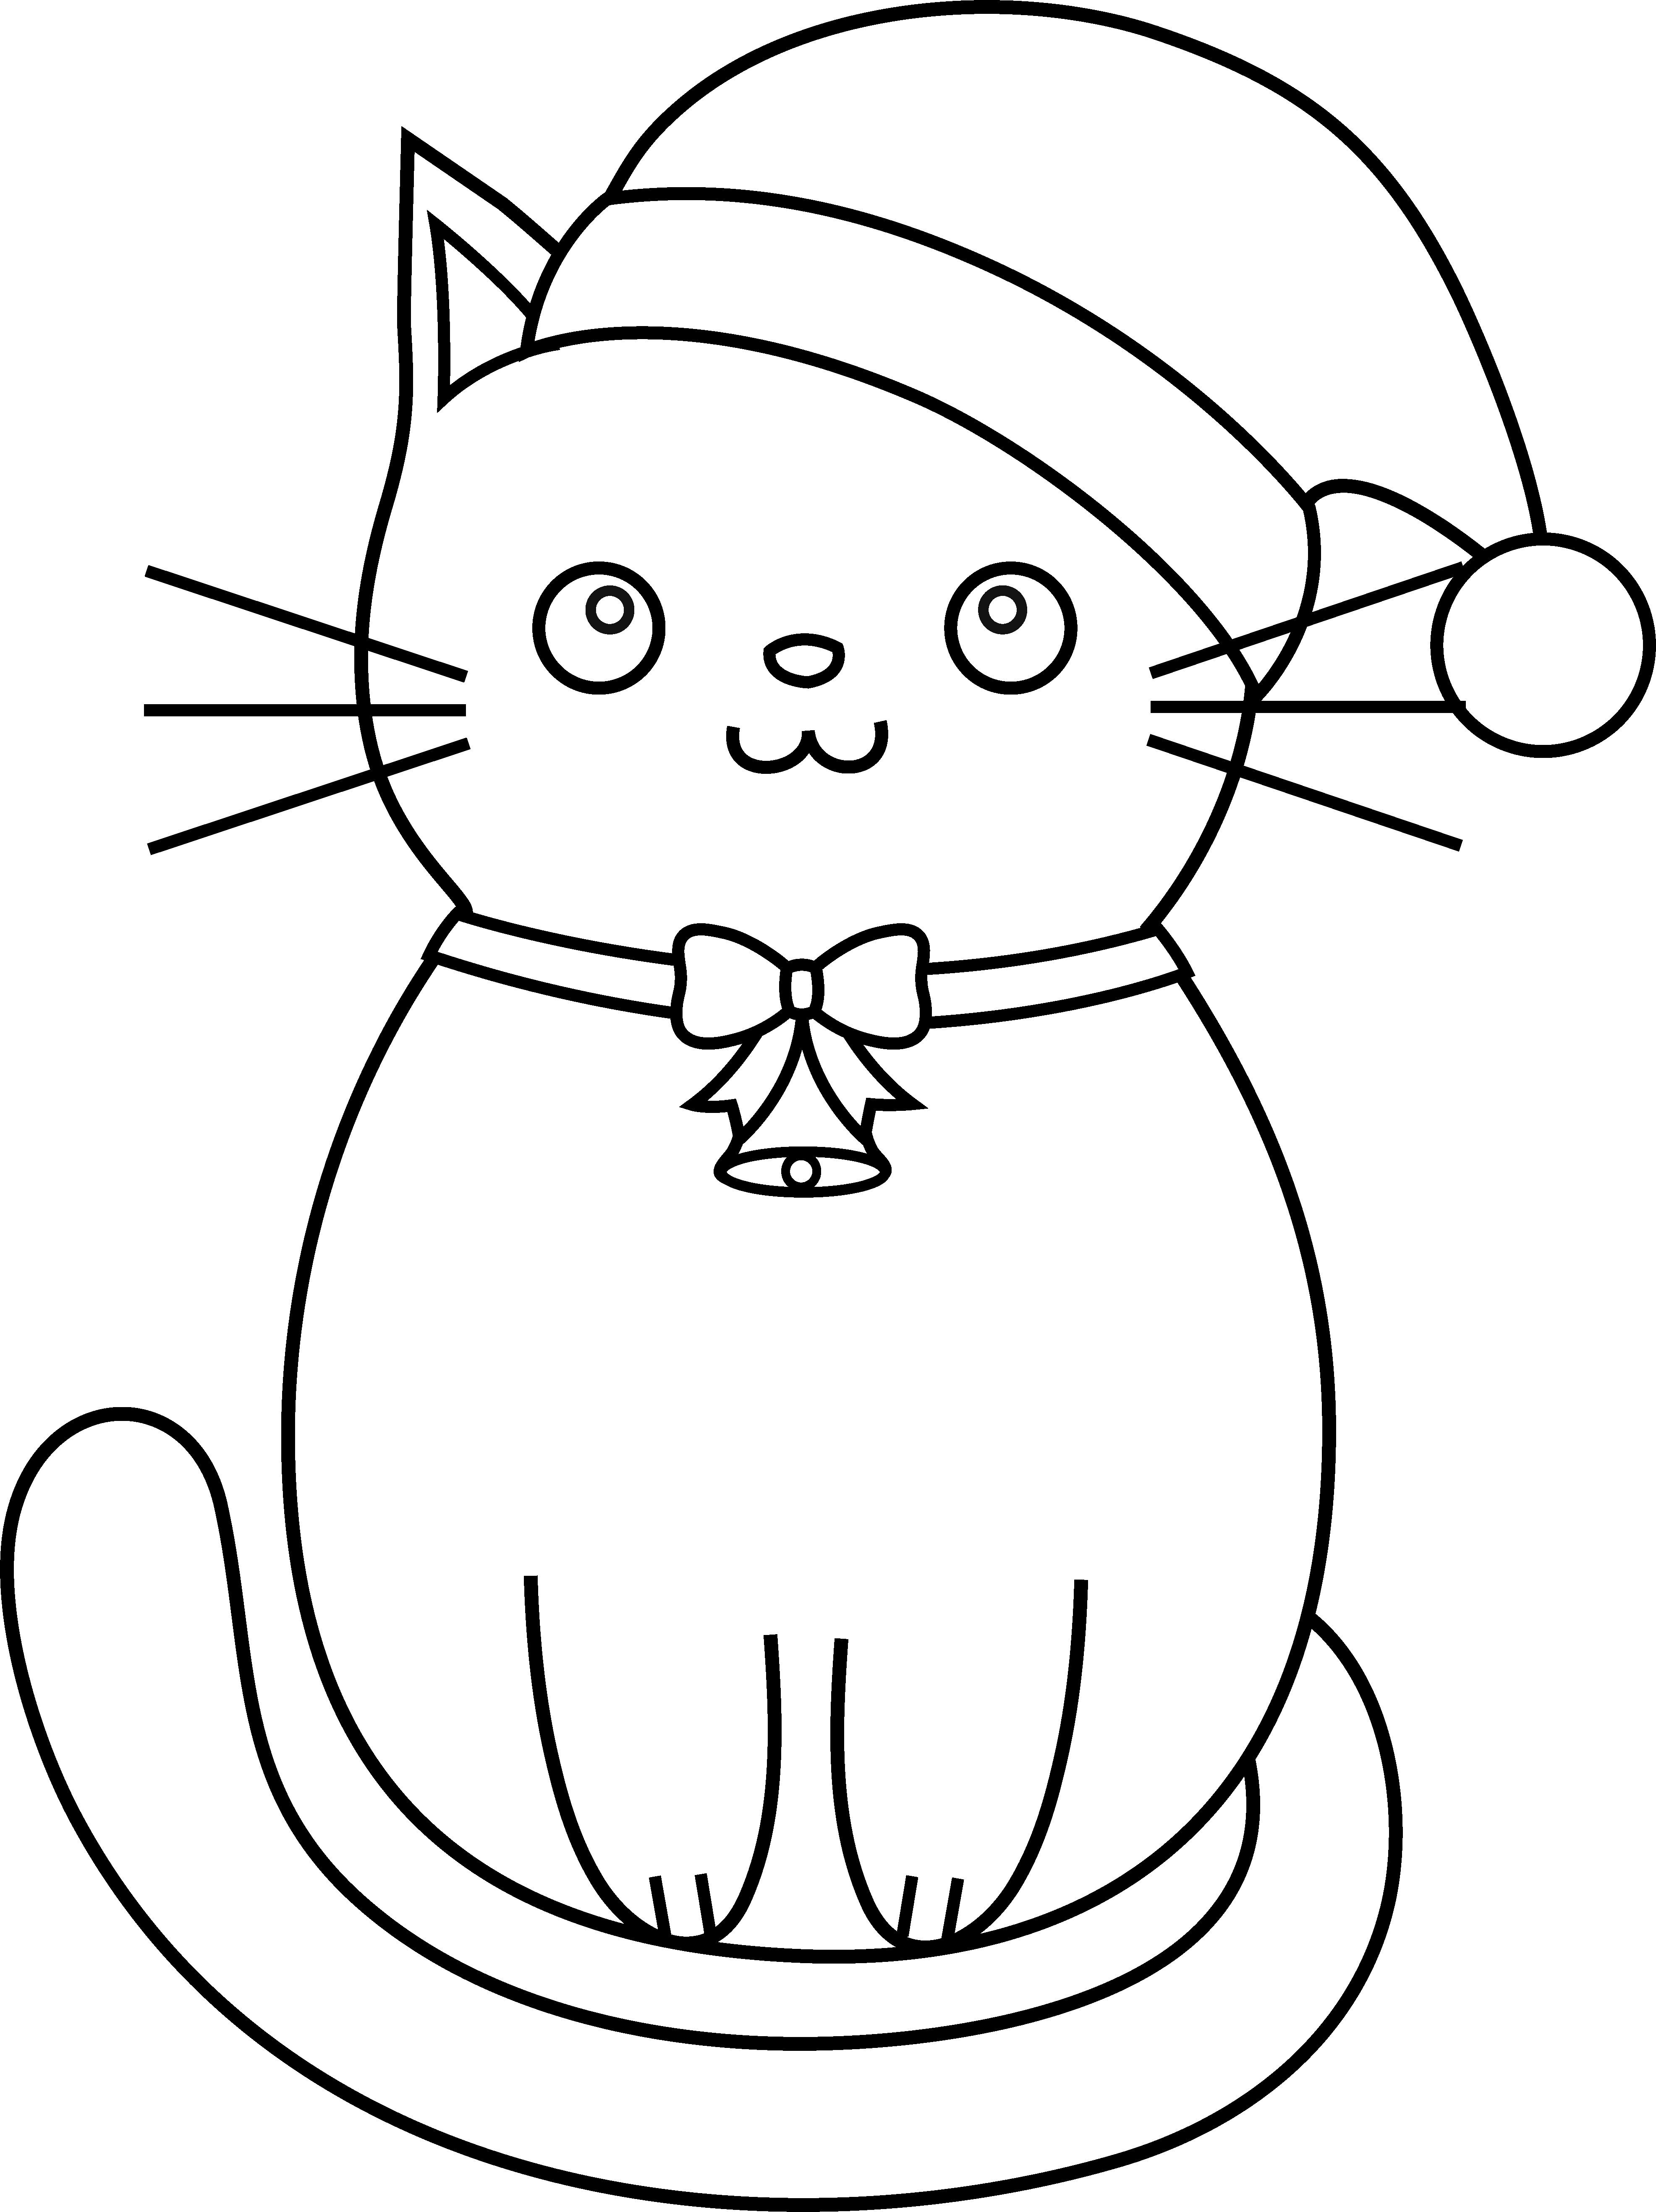 kitten printable kitten coloring pages best coloring pages for kids kitten printable